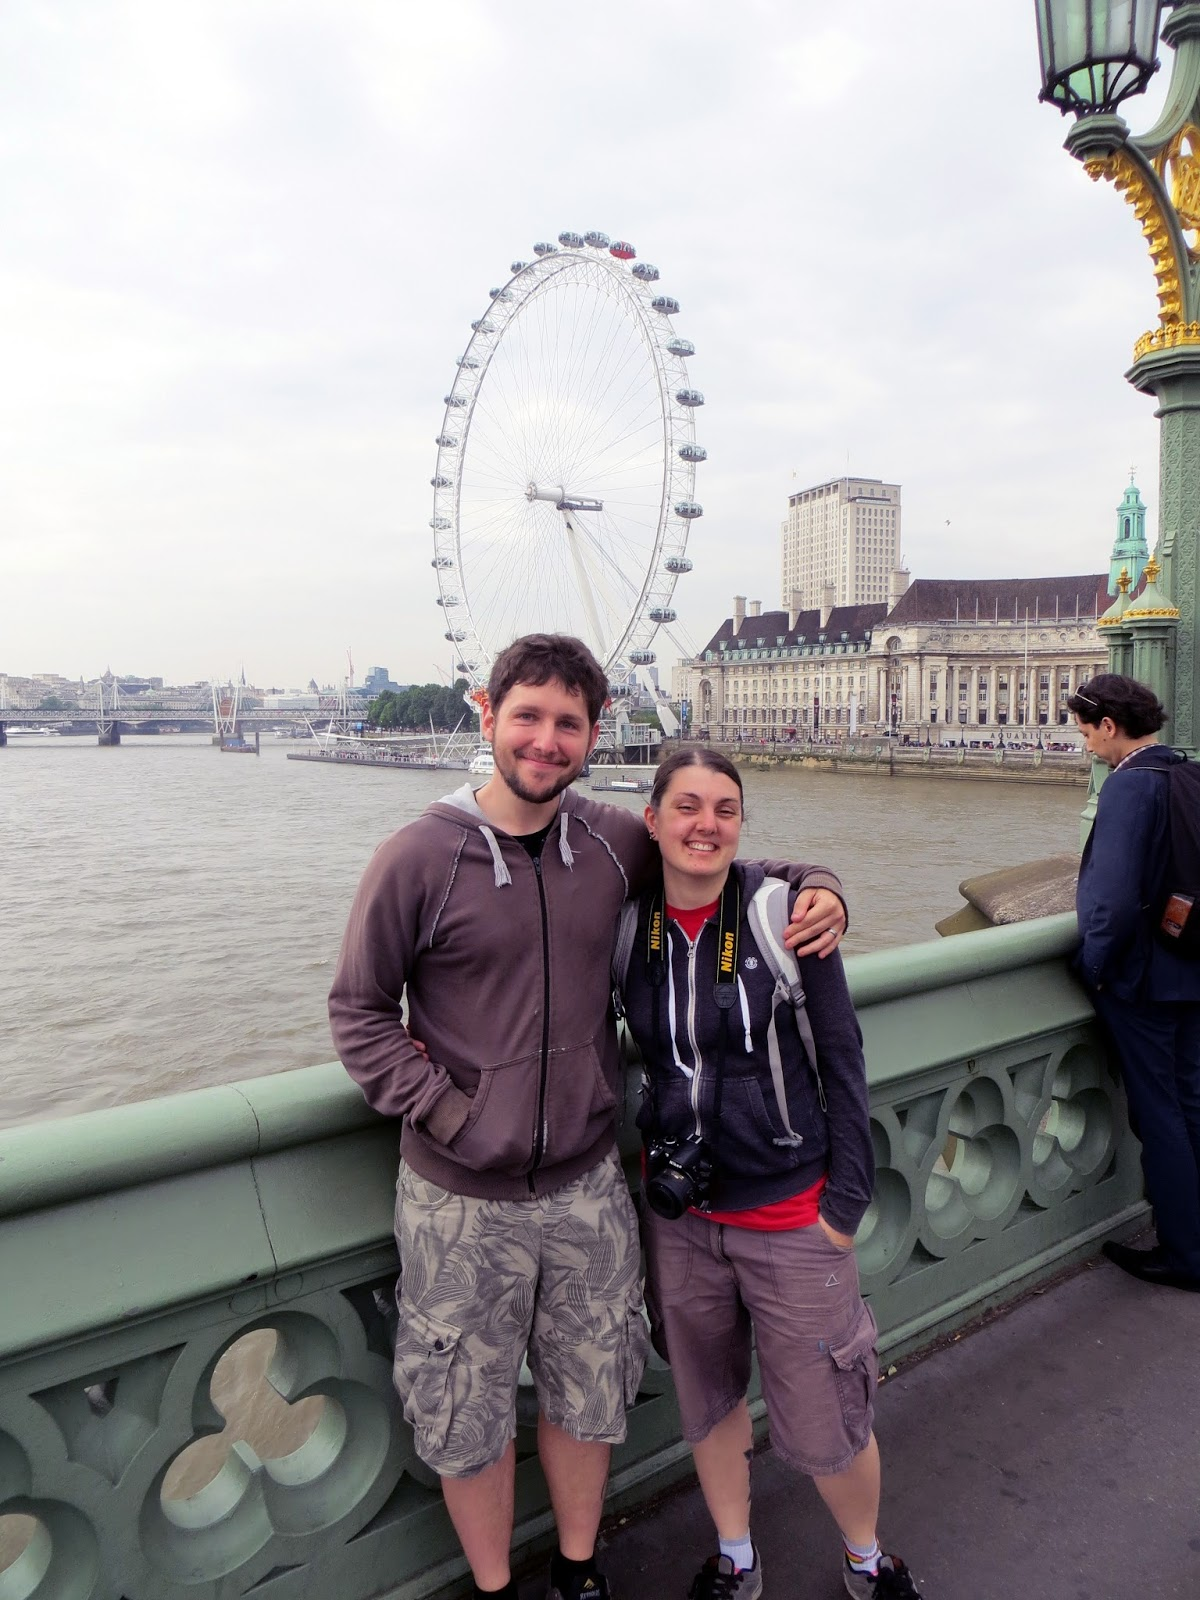 Visiting London on a budget, how to make the most out of the UK capital, Transport in London, using the tube in London, is it cheap to use the tube in London, cheap transport in London, Madame Tussauds, London Eye, London eye tickets, Houses of Parliament, Big Ben, Elizabeth tower, Westminster Abbey, St James Park, Buckingham Palace, The Mall, cheap London, backpacking London, off the beaten track London, alternative London, Piccadilly Circus, Leicester Square, Camden Town, markets in London, St Paul's Cathedral, Millennium Bridge, Tower Bridge, The Monument, cheap views over London, best view of London, V&A, Natural History, Science Museum, British Museum, The National Gallery, Tate Modern, Imperial War Museum, Greenwich, London on a budget, Cutty Sark, v & a, british museum, natural history museum, science museum, imperial war, national gallery, tate modern, The monument, great fire of london, views of london, Camden town, Camden lock, st paul's cathedral, millennium bridge, Piccadilly circus, Leicester square, tooting bex, london eye, houses of parliament, big ben, Westminster abbey, London, budget, free, tips, travel tips, travel advice, tower bridge, tower of london, the shard, visit england, uk, london, greenwich, cutty sark, the tube, train tickets, london underground, accommodation, Buckingham Palace, the mall, st james park, royal family, hyde park, marble arch, oxford street,